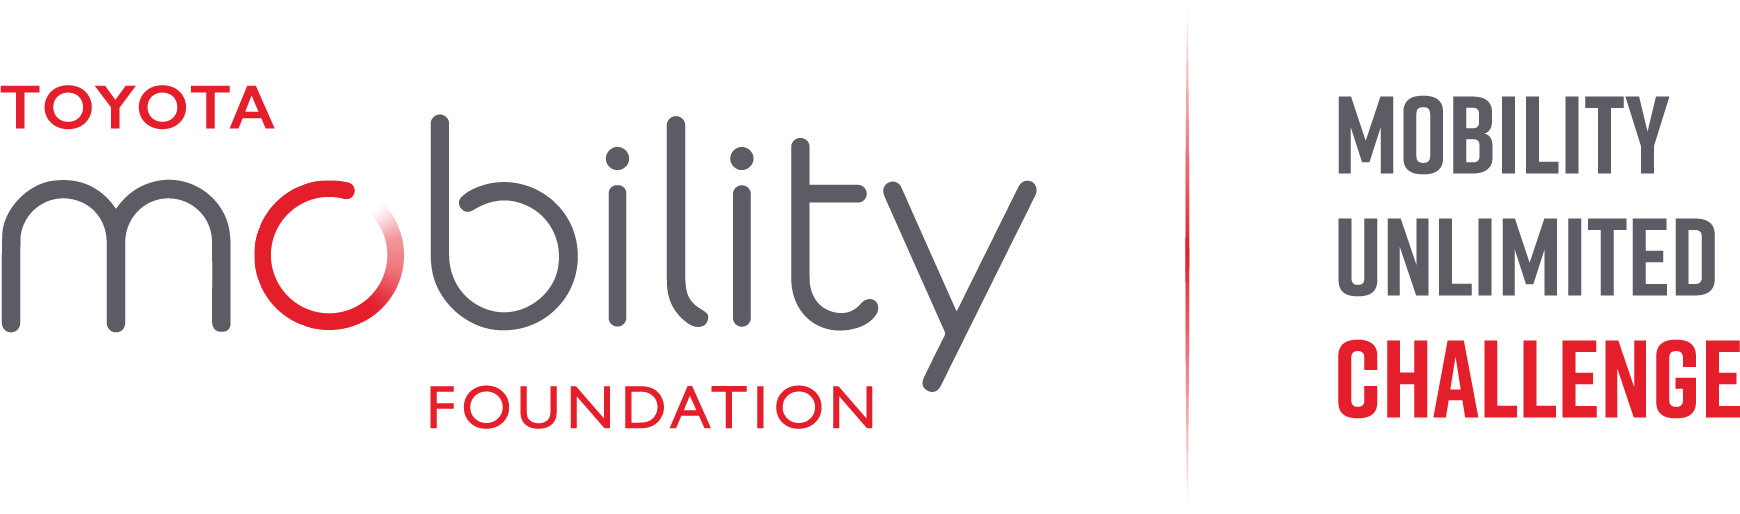 the mobility unlimited challenge toyota mobility foundation